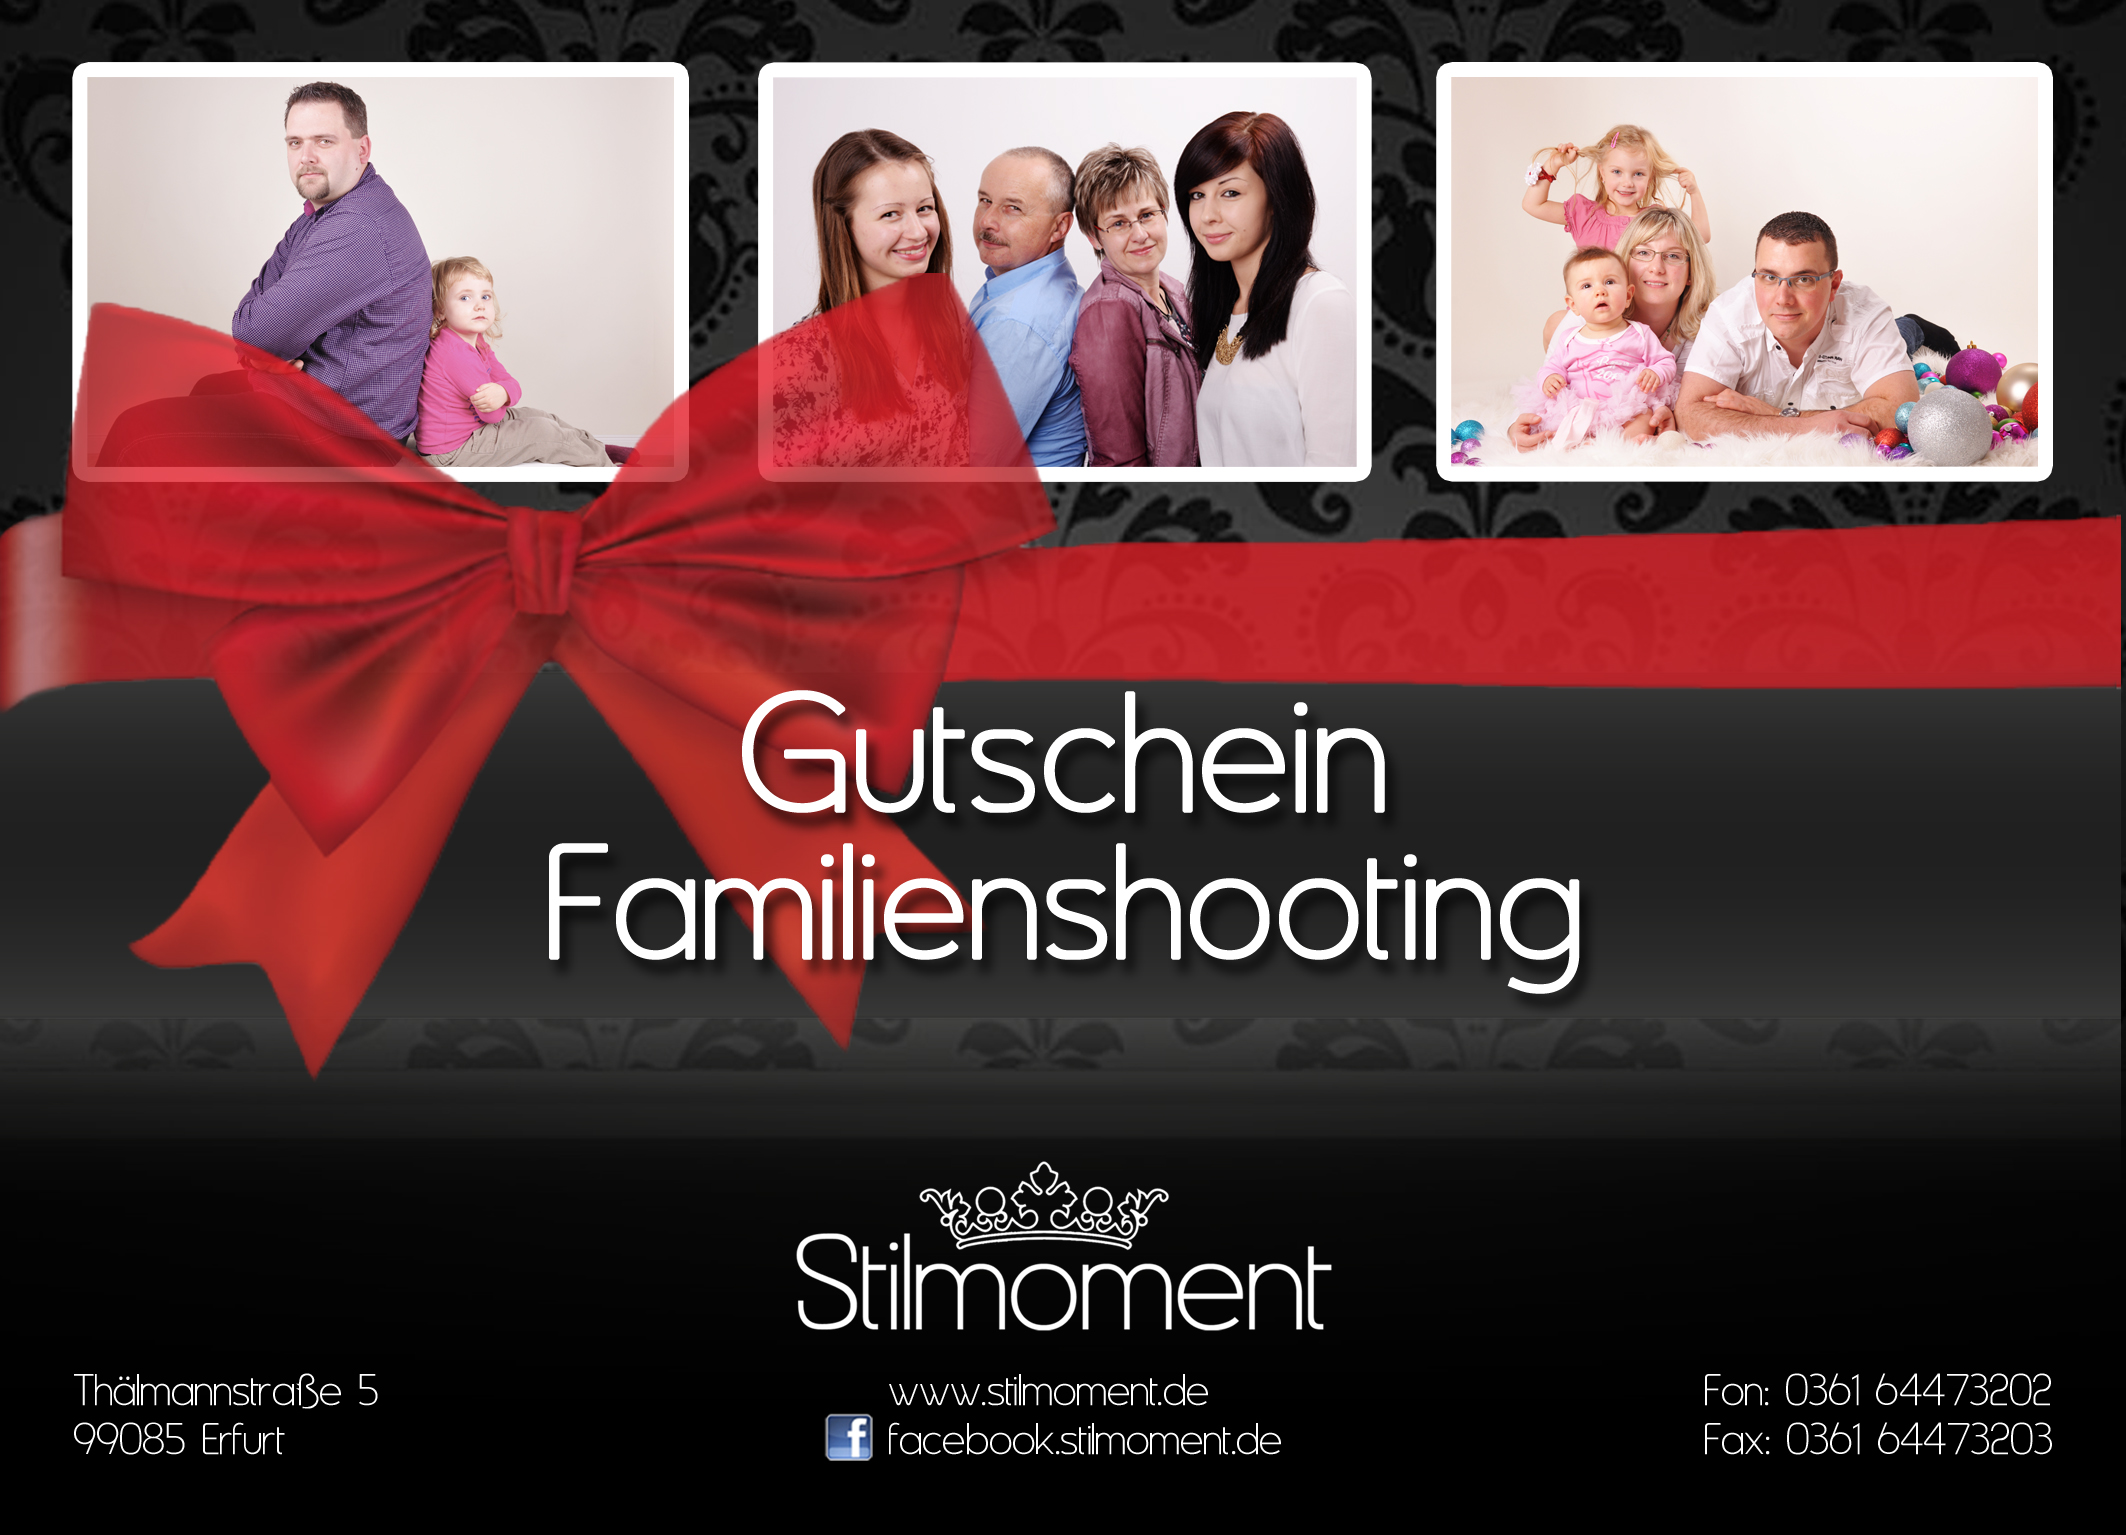 stilmoment ihr stilvolles fotostudio in erfurt gutschein familienshooting. Black Bedroom Furniture Sets. Home Design Ideas